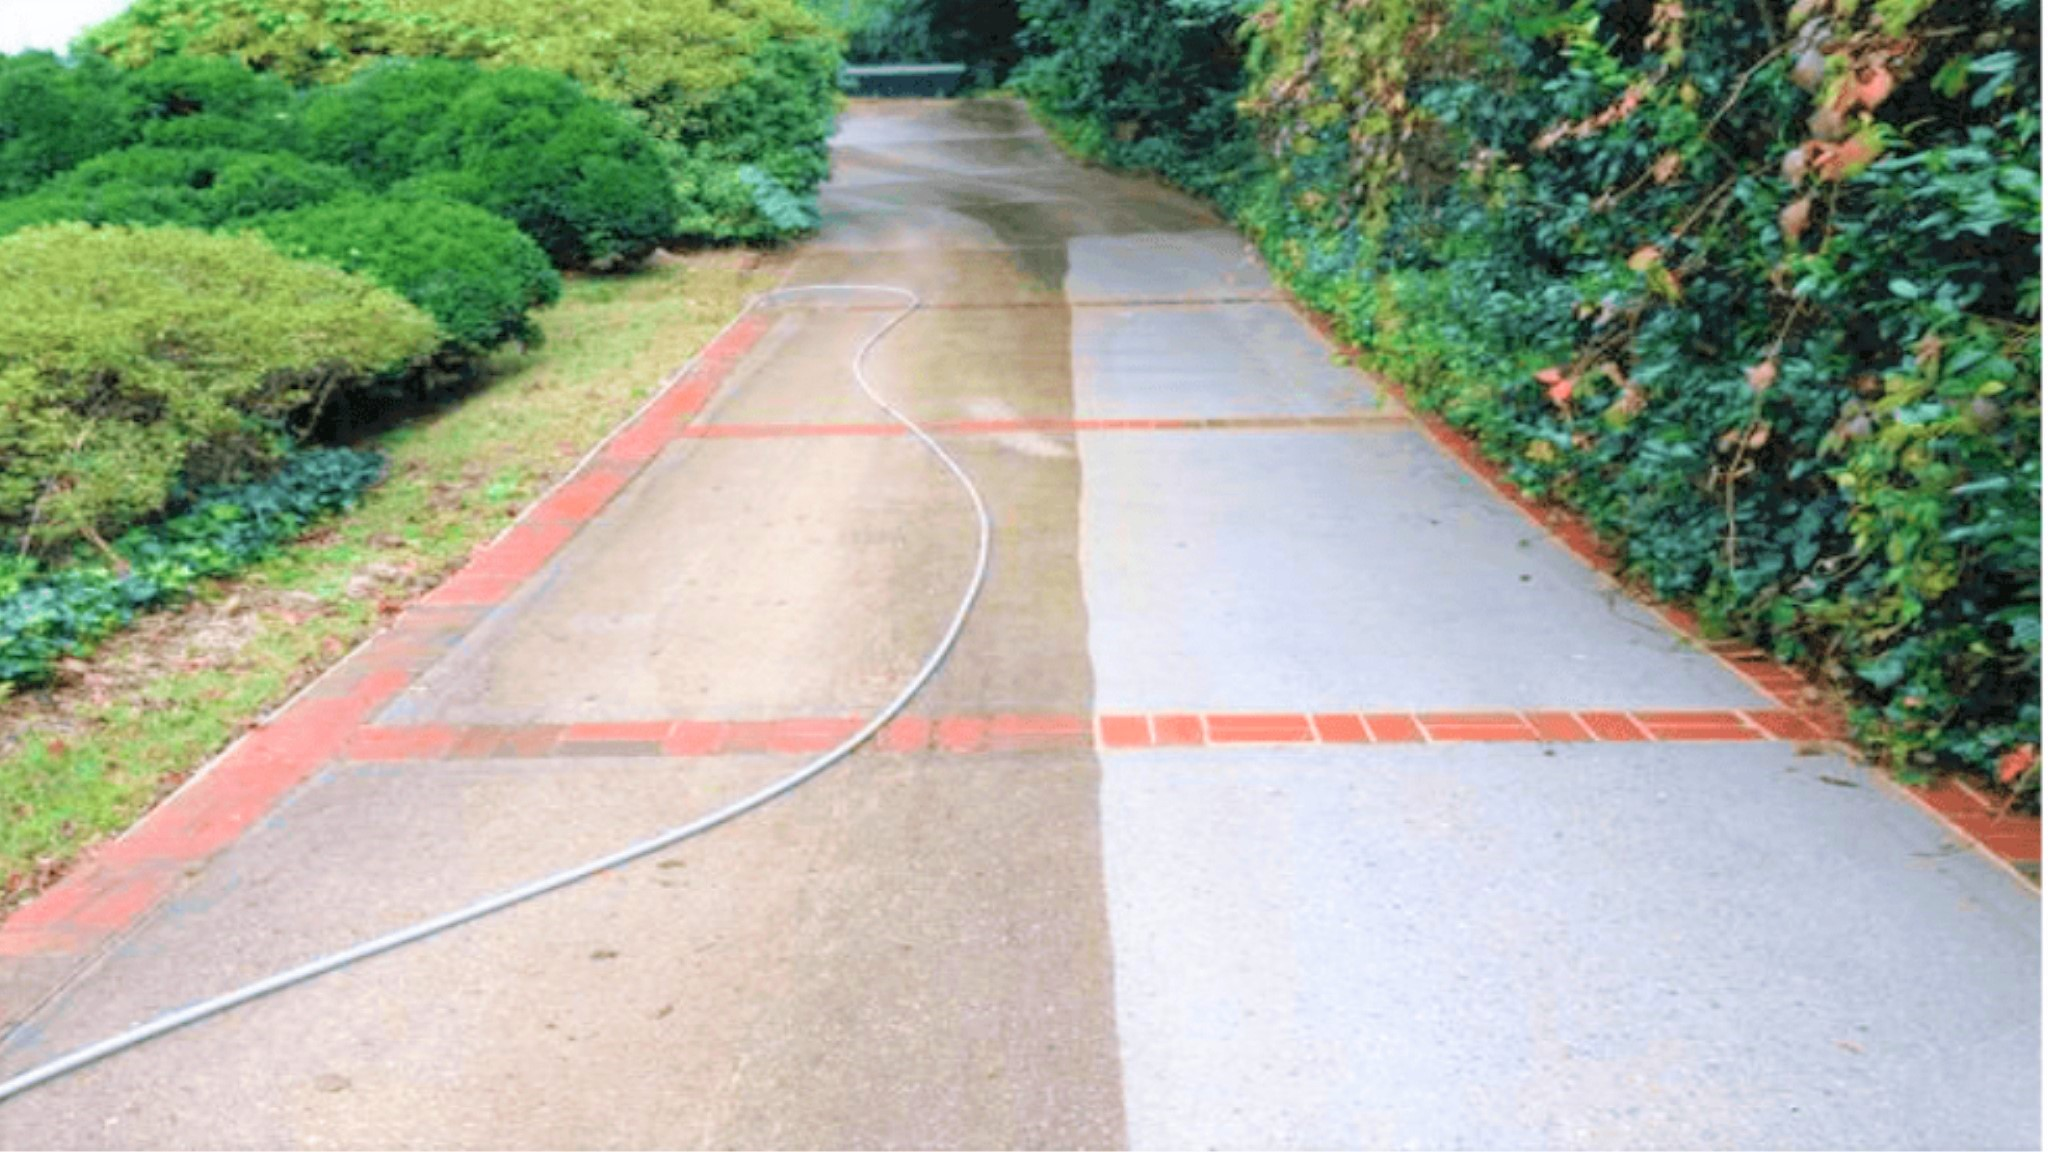 pressure washing driveway cleaning in Orlando Florida; driveway cleaning orlando; orlando driveway cleaning services; pressure washing Orlando; pressure washing orlando fl; commercial pressure washing Orlando; pressure washing in Orlando; roof pressure washing Orlando; pressure washing companies Orlando; pressure washing companies in Orlando; pressure washing orlando florida; pressure washing services orlando fl; pressure washers in Orlando;